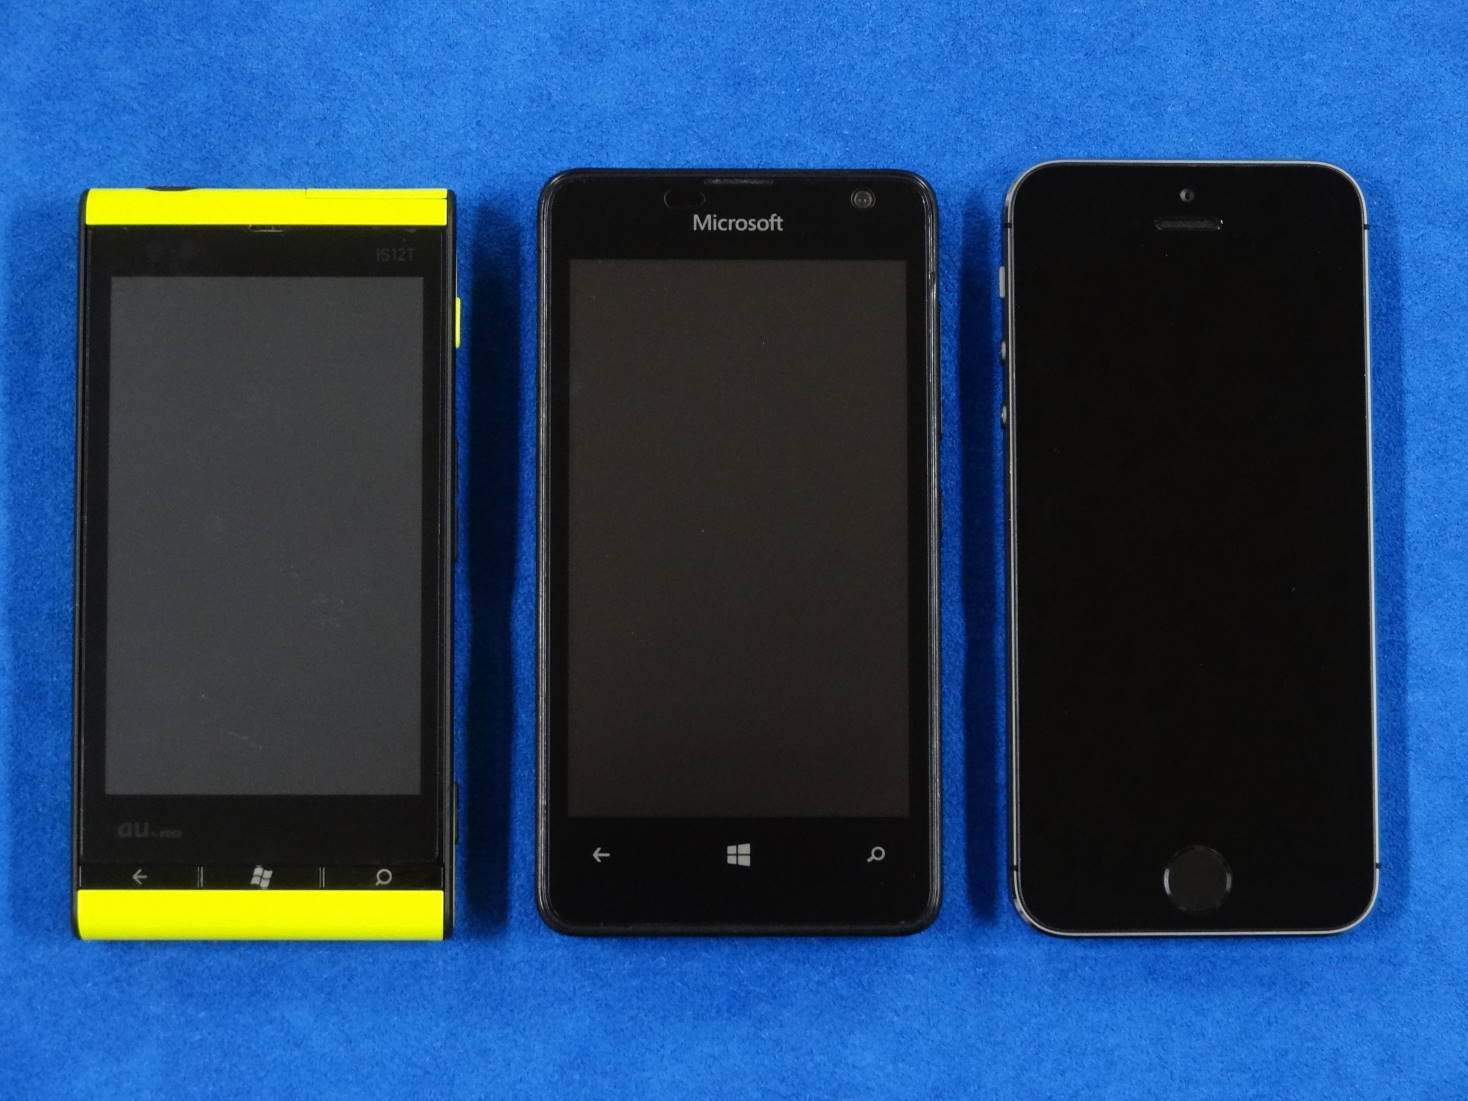 Windows Phone IS12T と Microsoft Lumia 430 と iPhone 5s